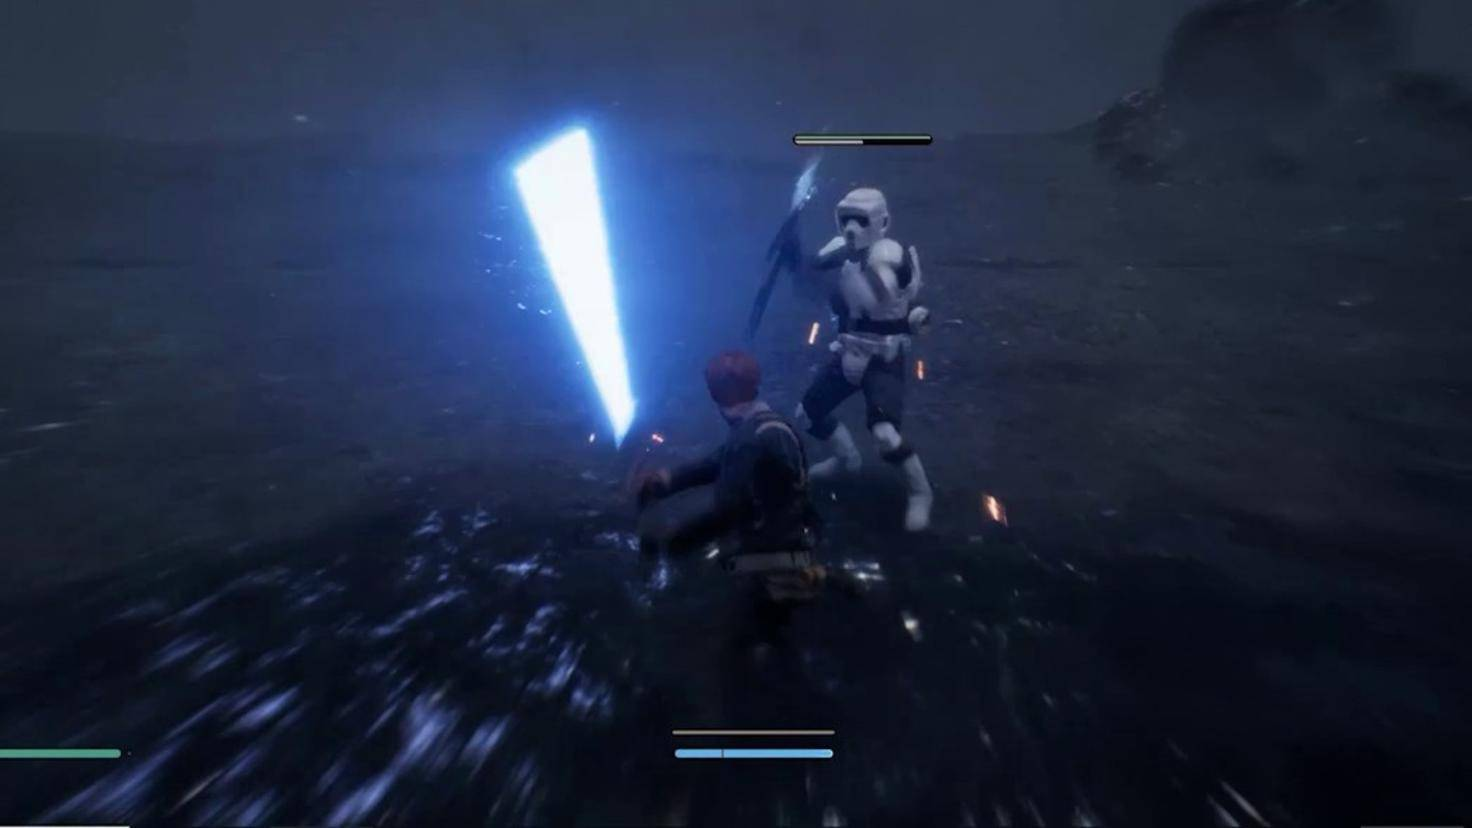 star-wars-jedi-fallen-order-kampf-block-meter-screenshot